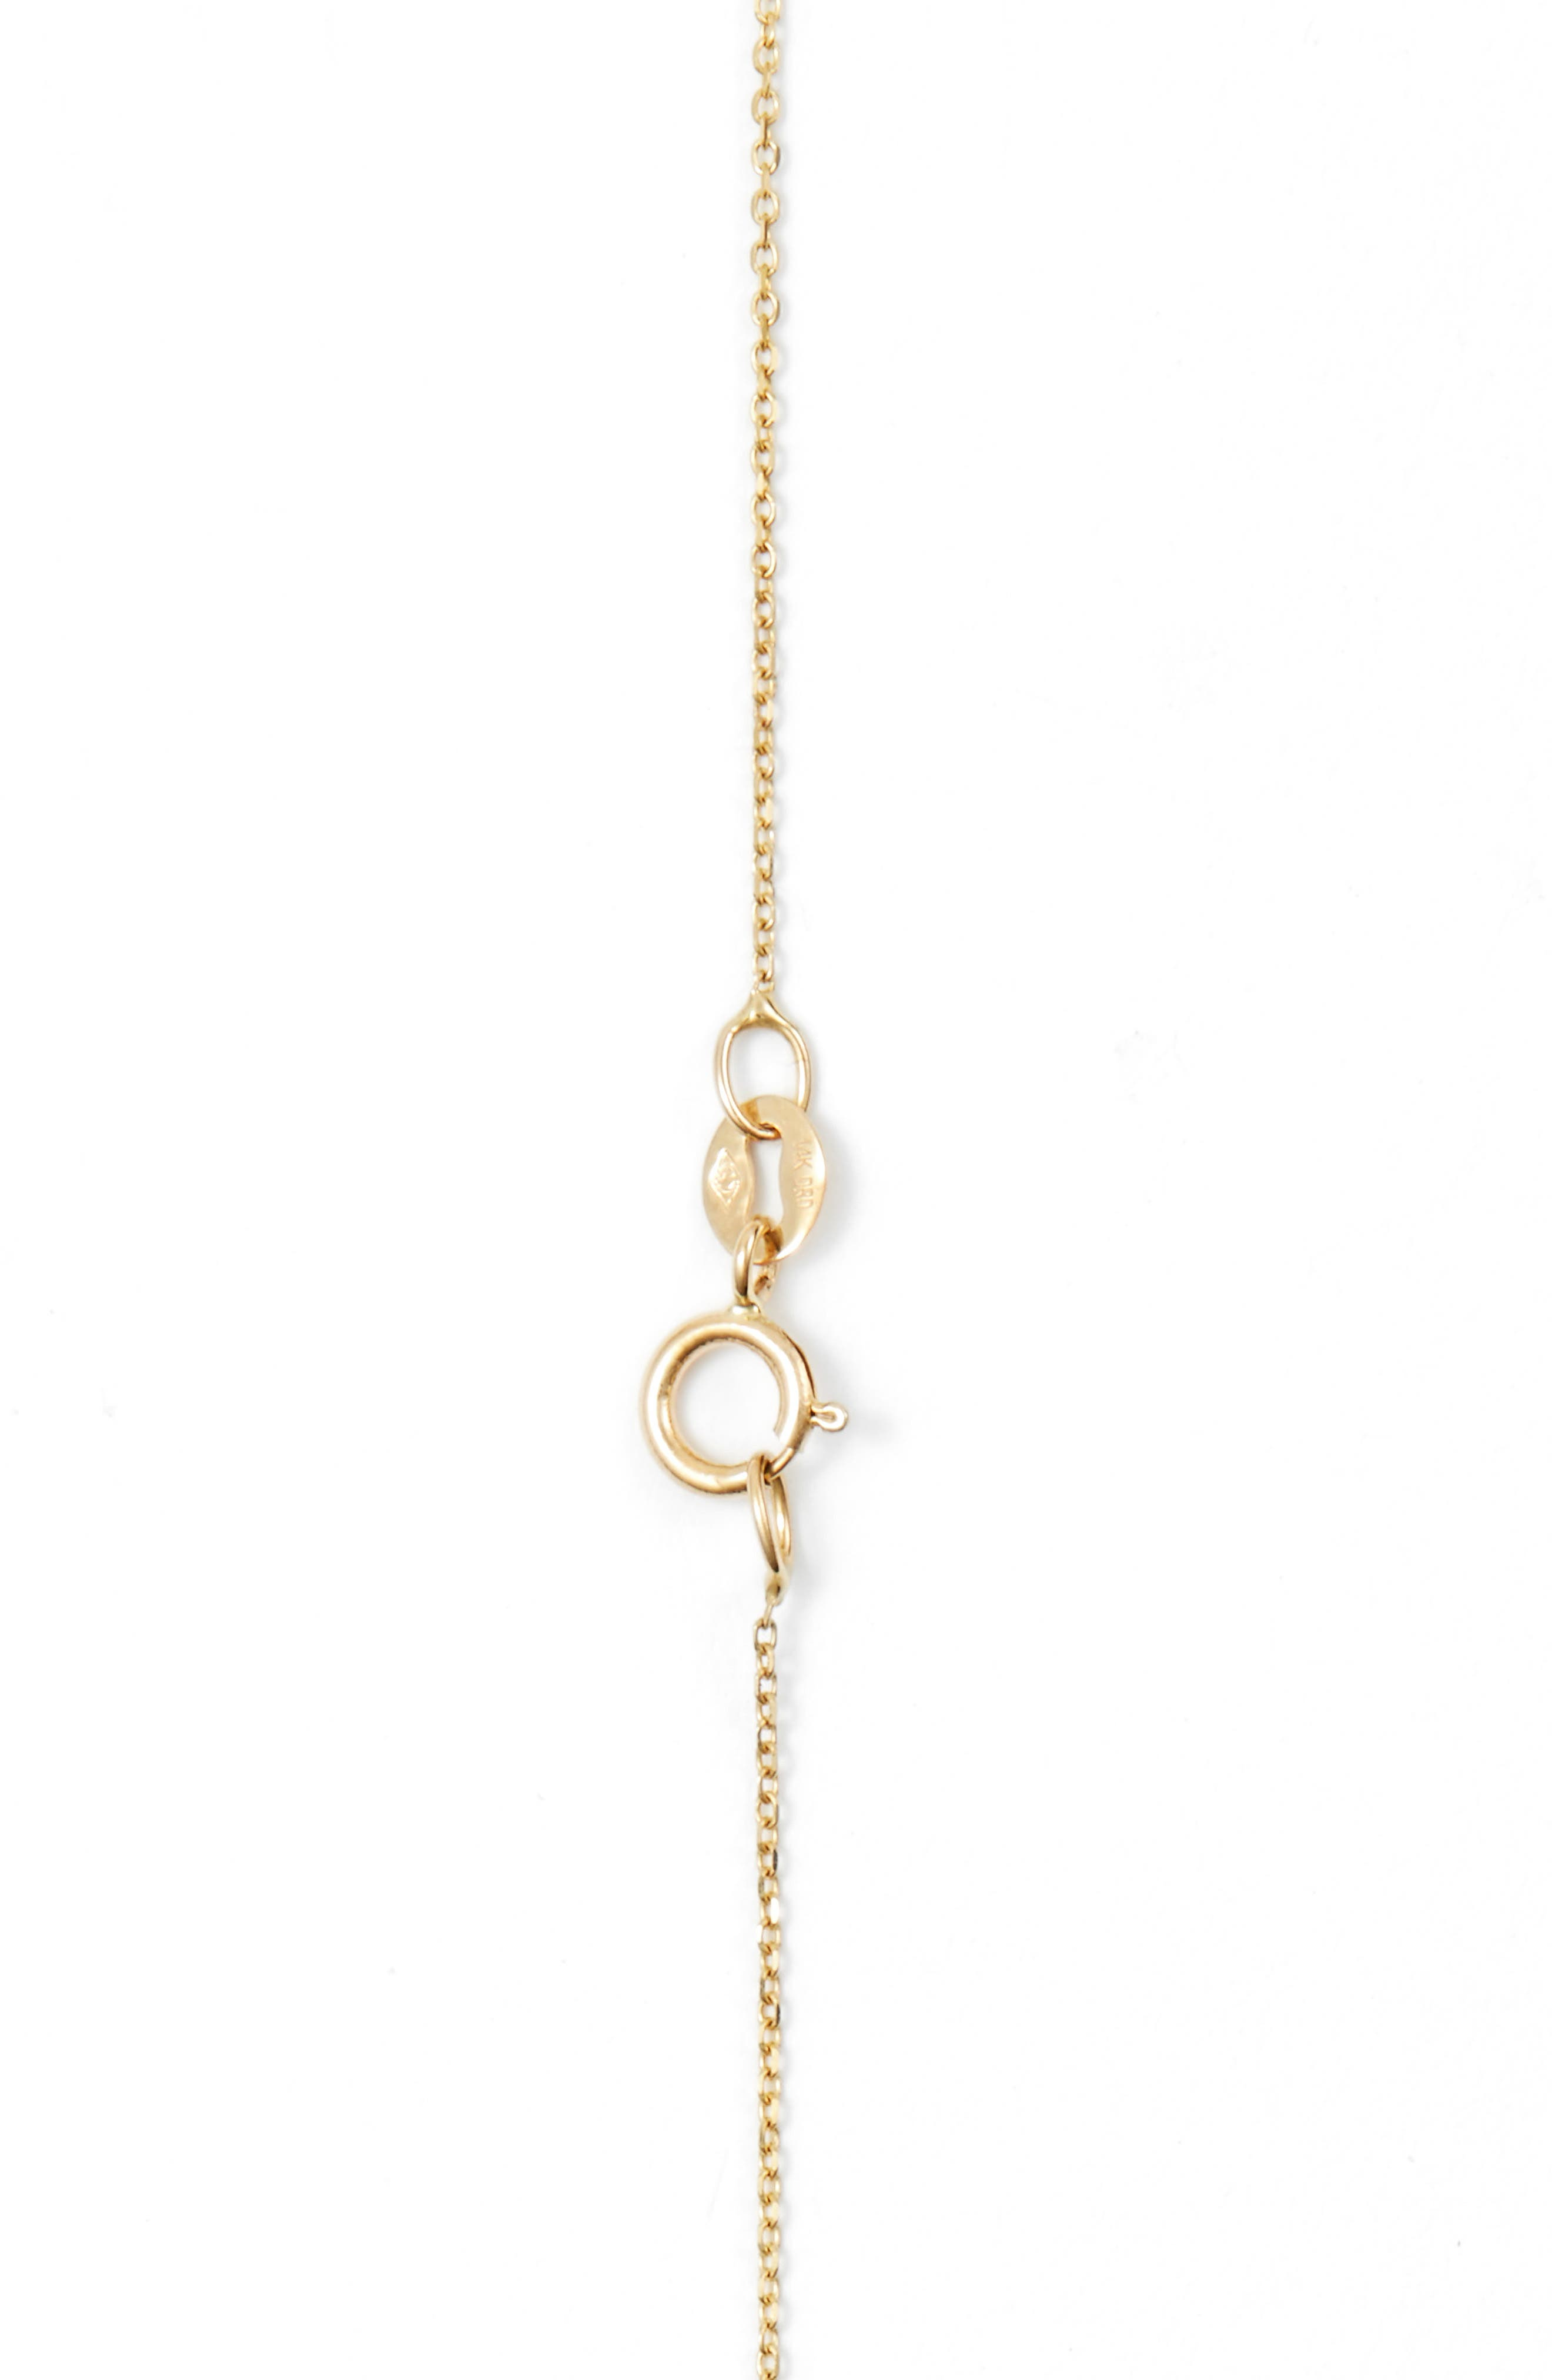 DANA REBECCA DESIGNS, 'Lauren Joy' Diamond Disc Pendant Necklace, Alternate thumbnail 3, color, YELLOW GOLD